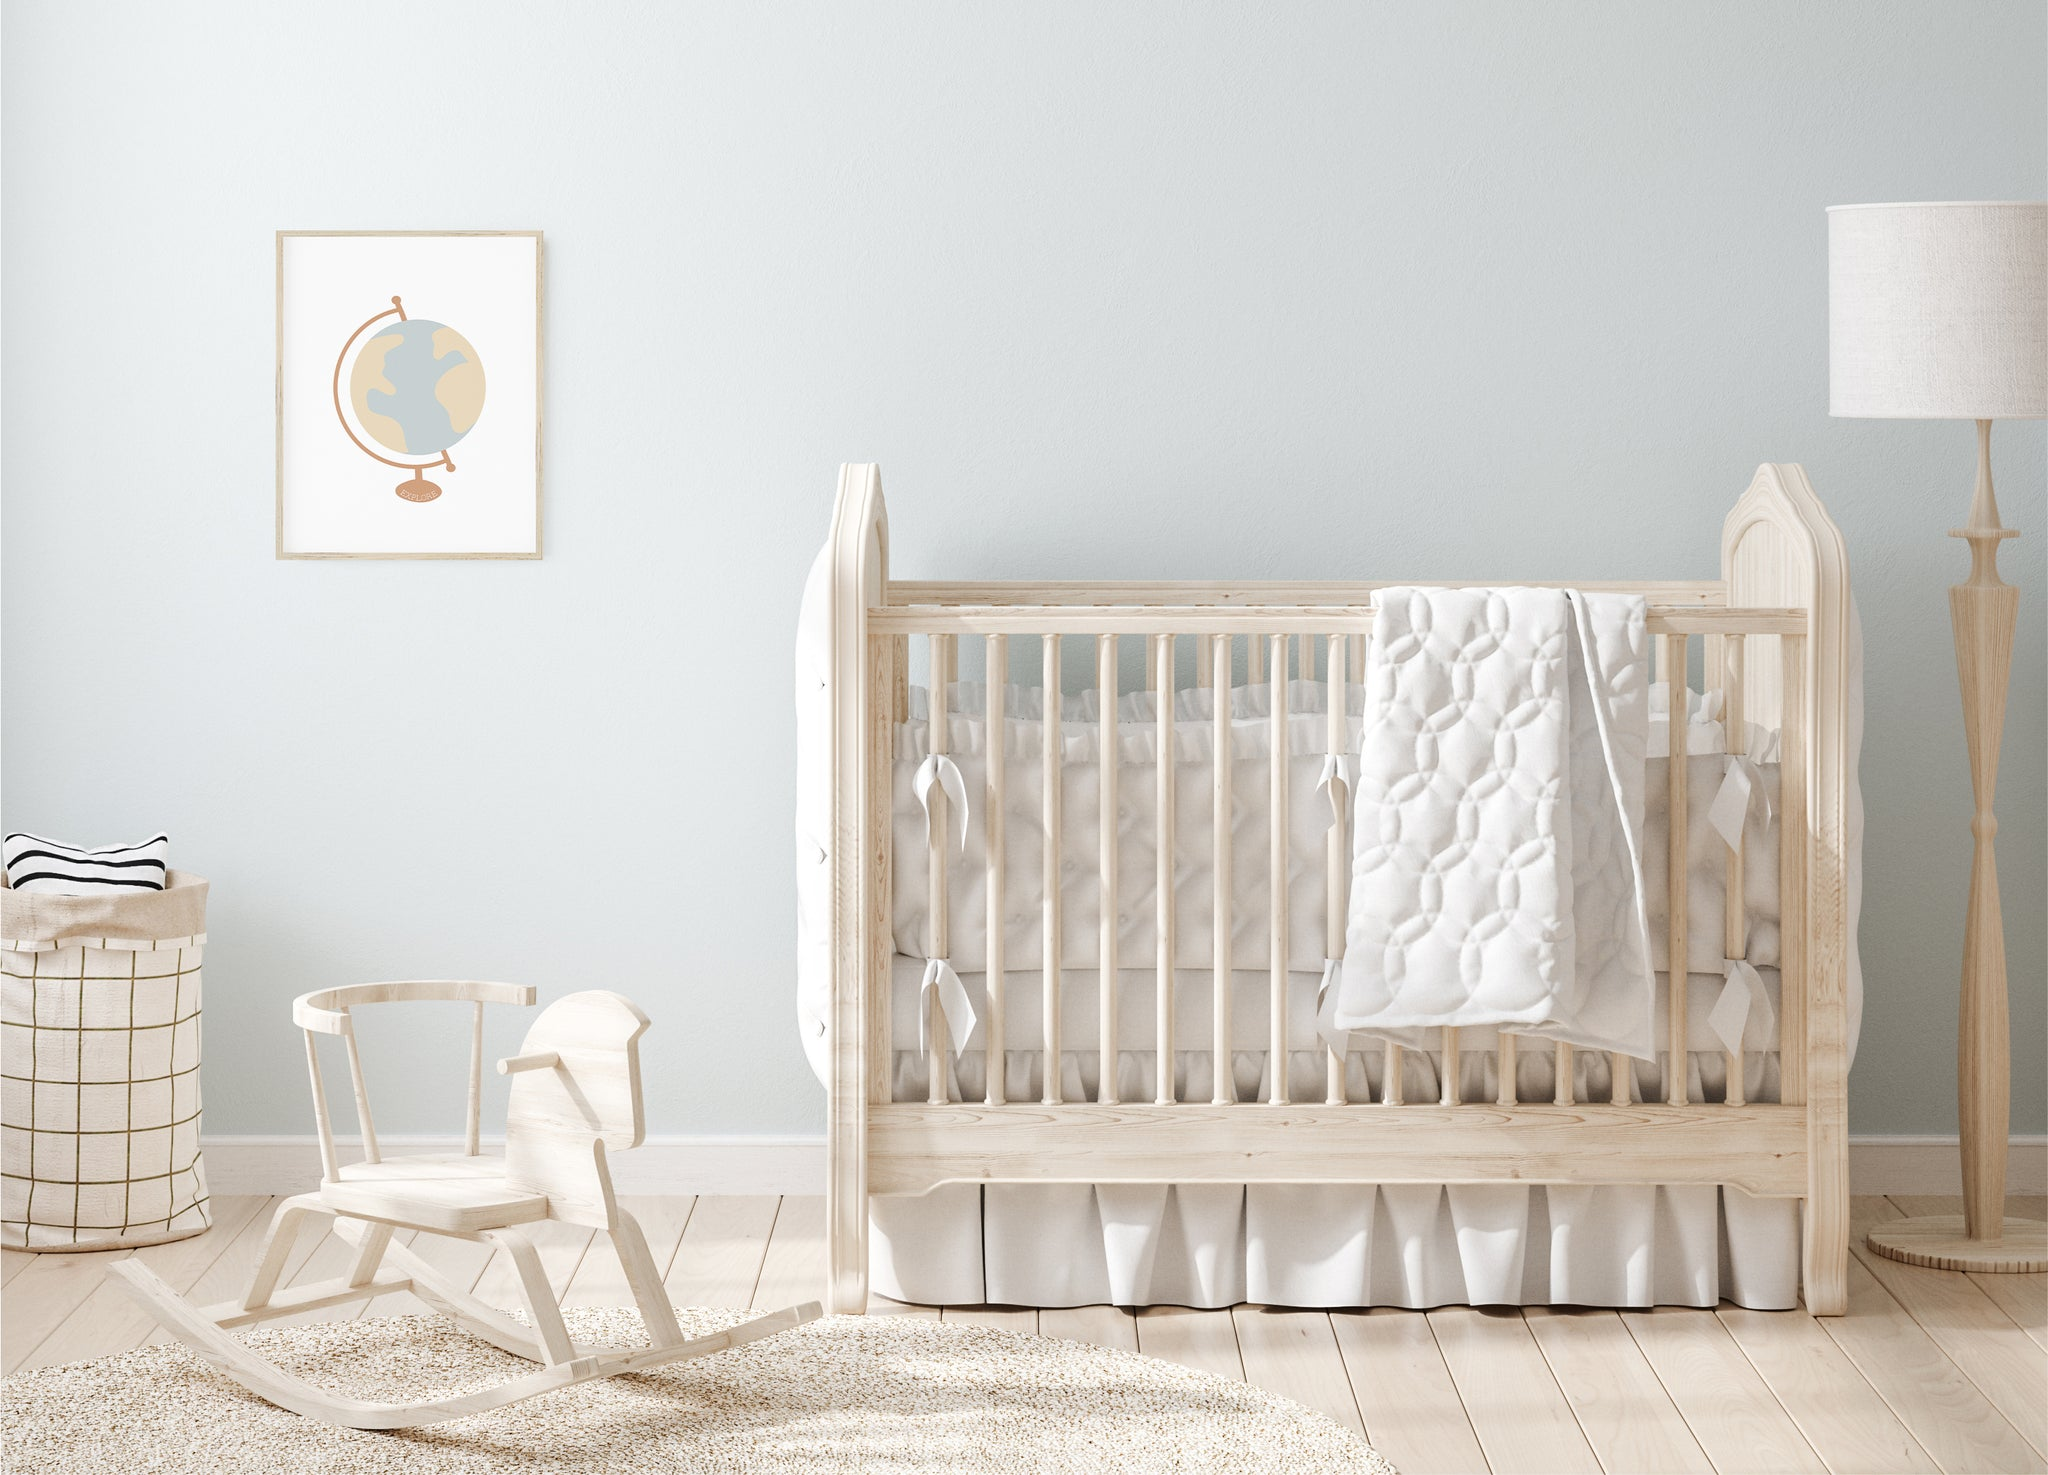 Baby nursery with blue wall, light wood furniture, and globe artwork